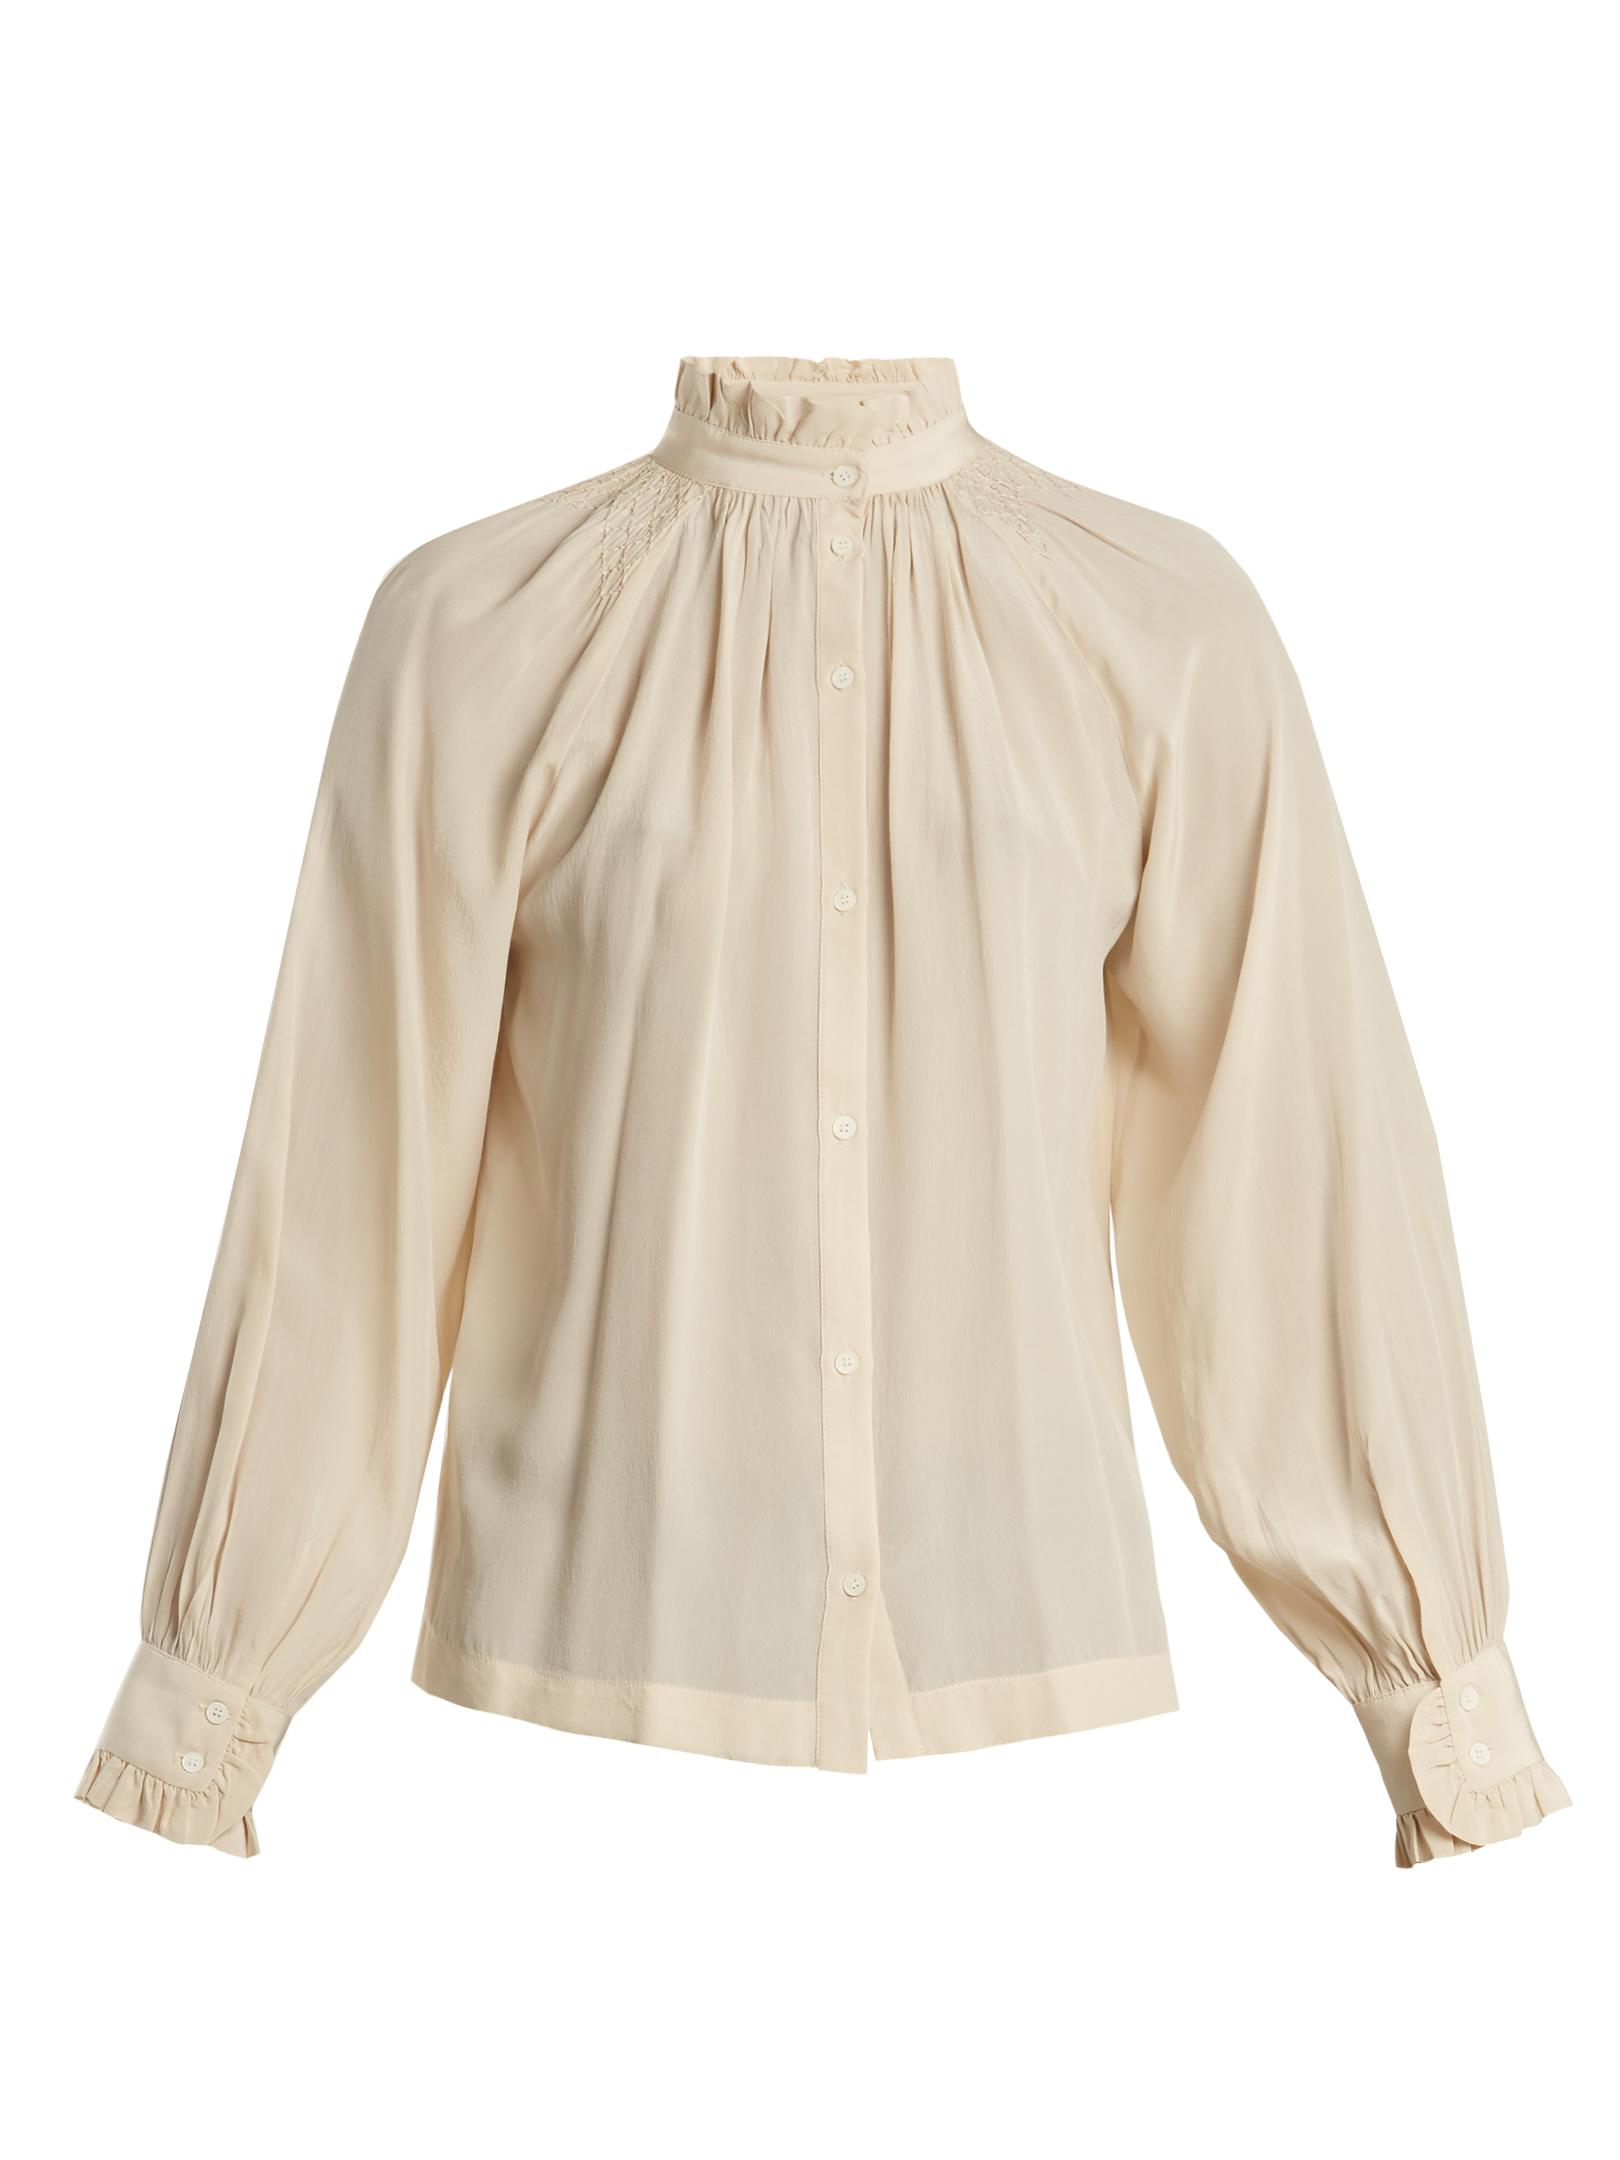 Frill-trimmed stitch-detail silk shirt Masscob Buy Cheap 2018 New Buy Cheap Reliable JbdTNhAr